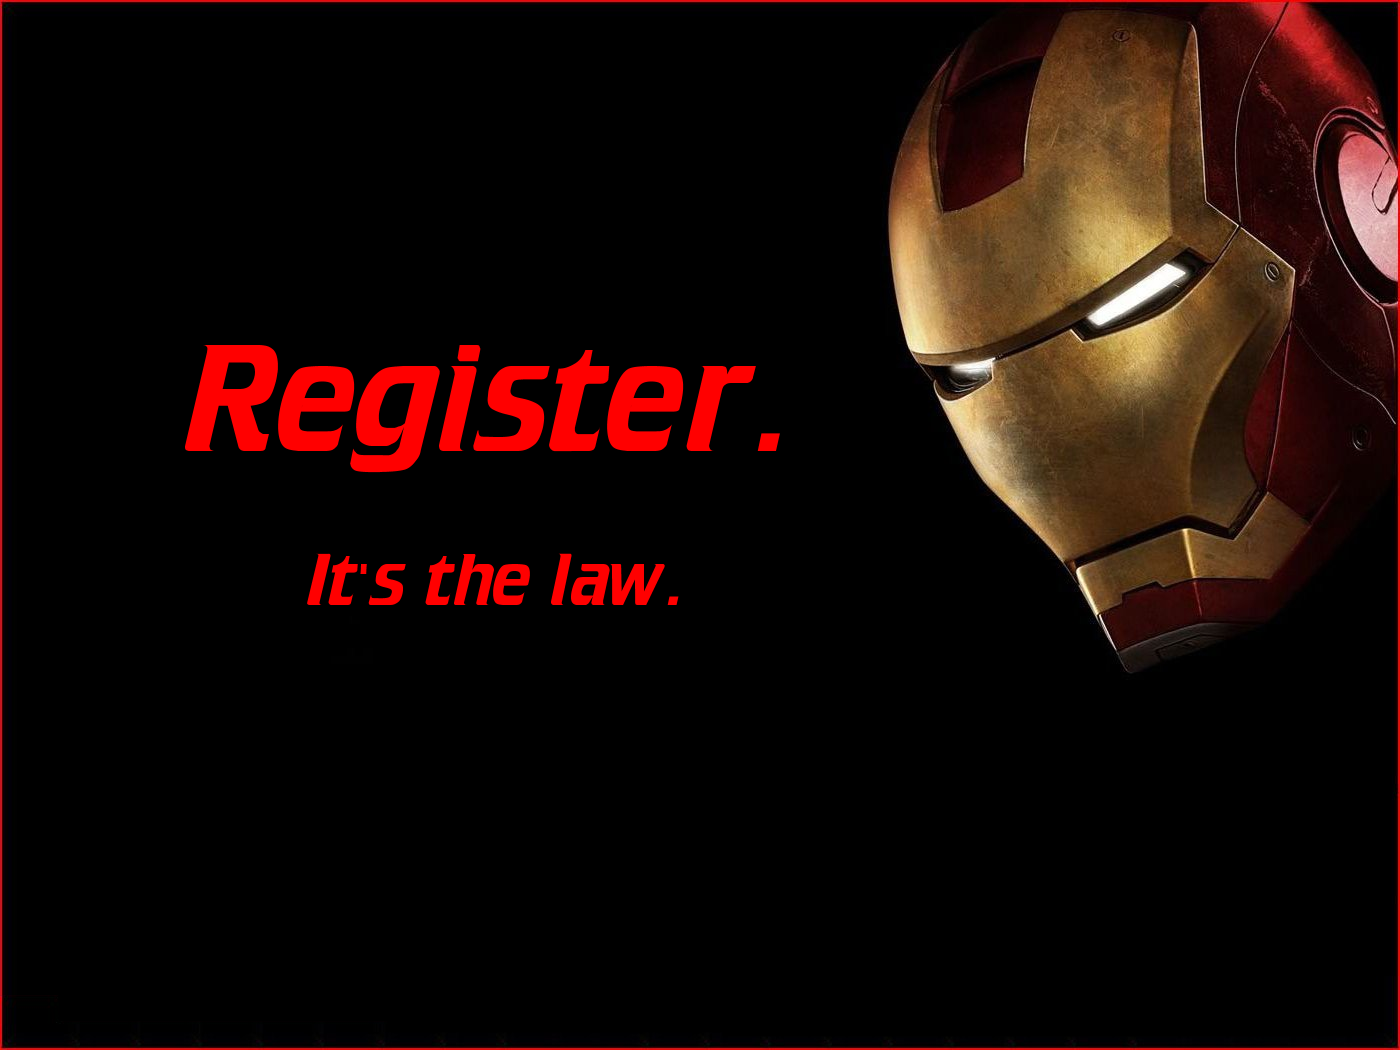 iron-man-register-its-the-law